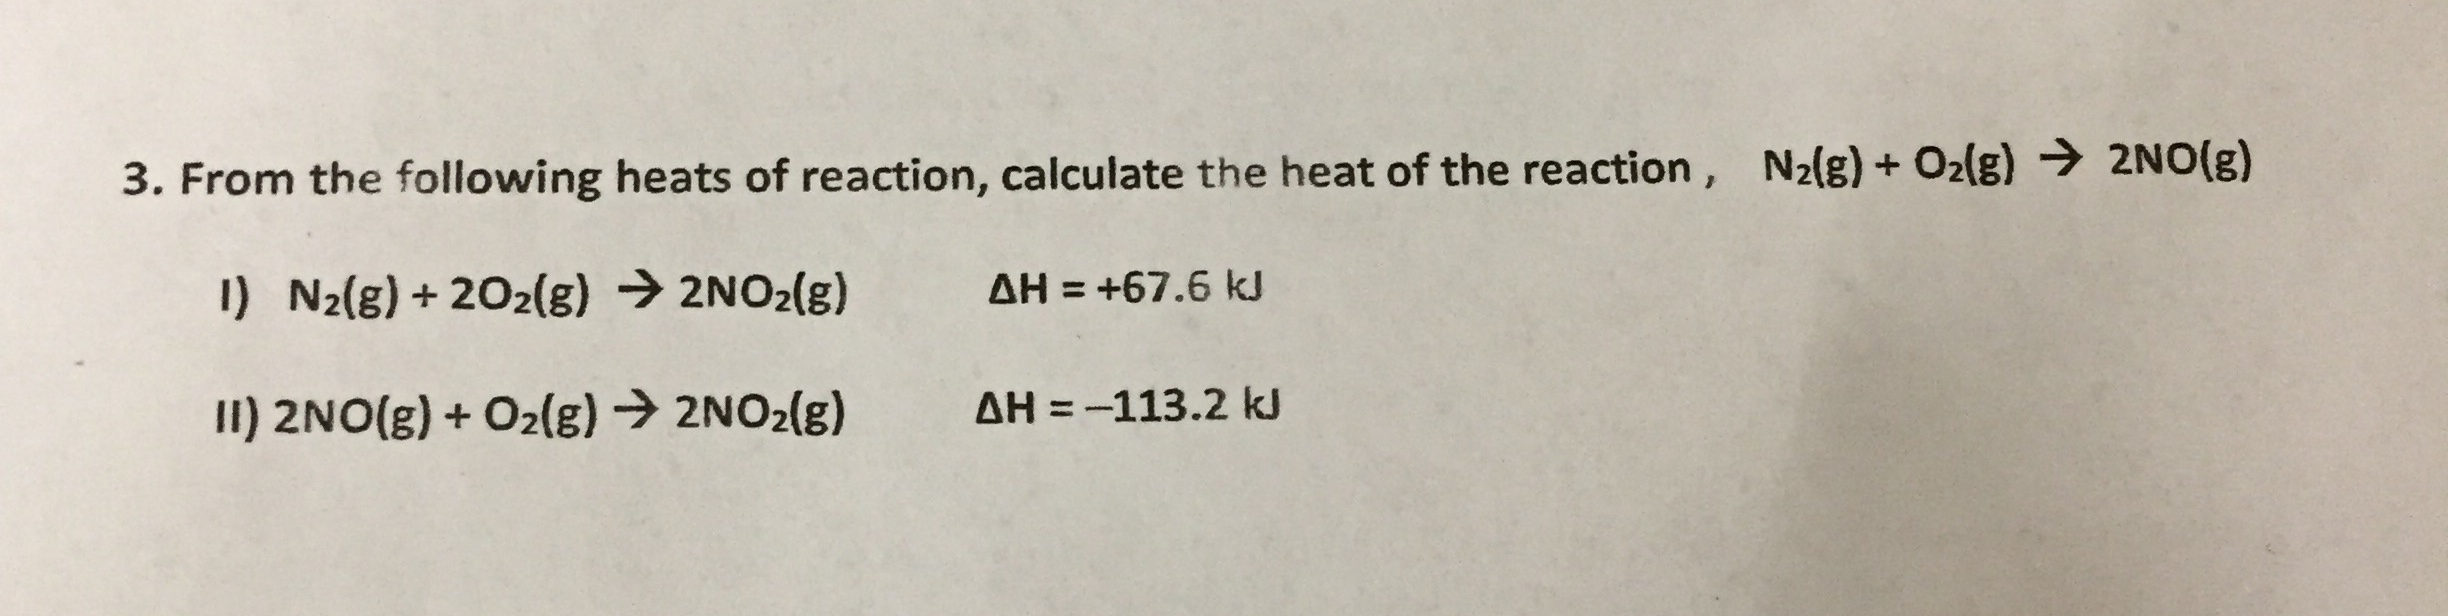 3. From the following heats of reaction, calculate the heat of the reaction, N21g)+ O2lg) 2NO(E) 1) N2(g) + 202(g) 2NO2(g) ΔΗ +67.6 kJ